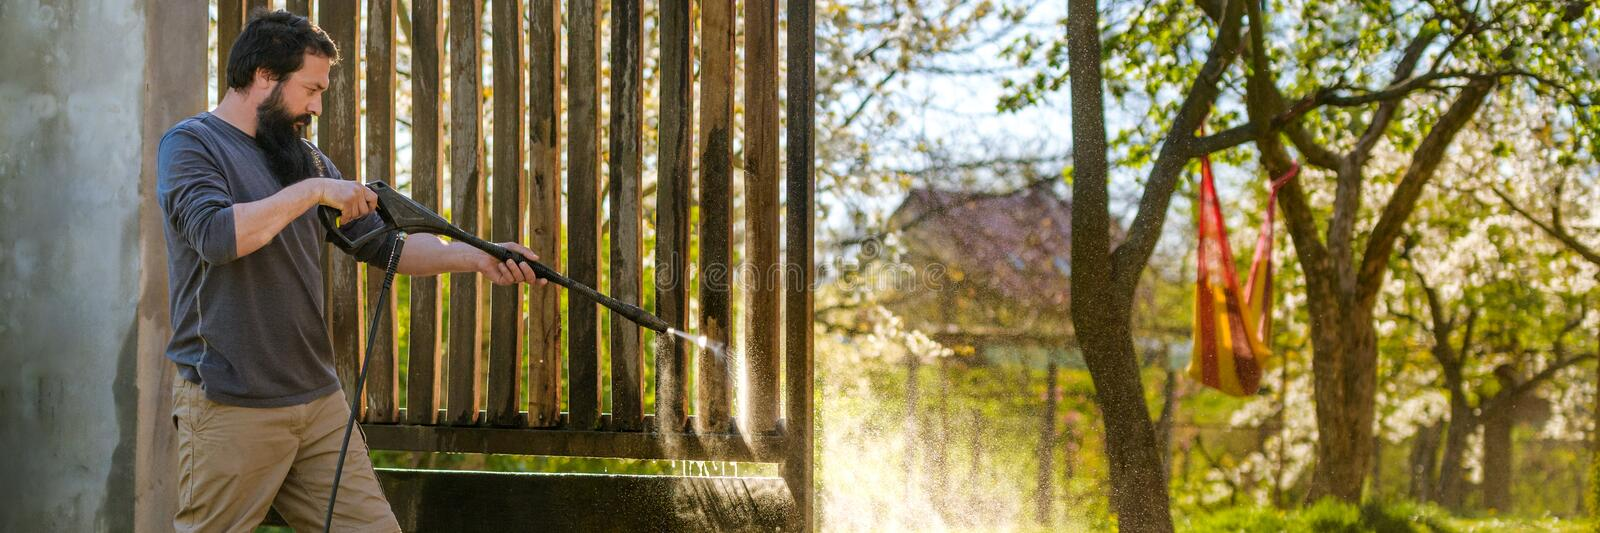 Mid adult caucasian man cleaning a wooden gate with a power washer. High pressure water cleaner used to DIY repair garden gate. stock photos